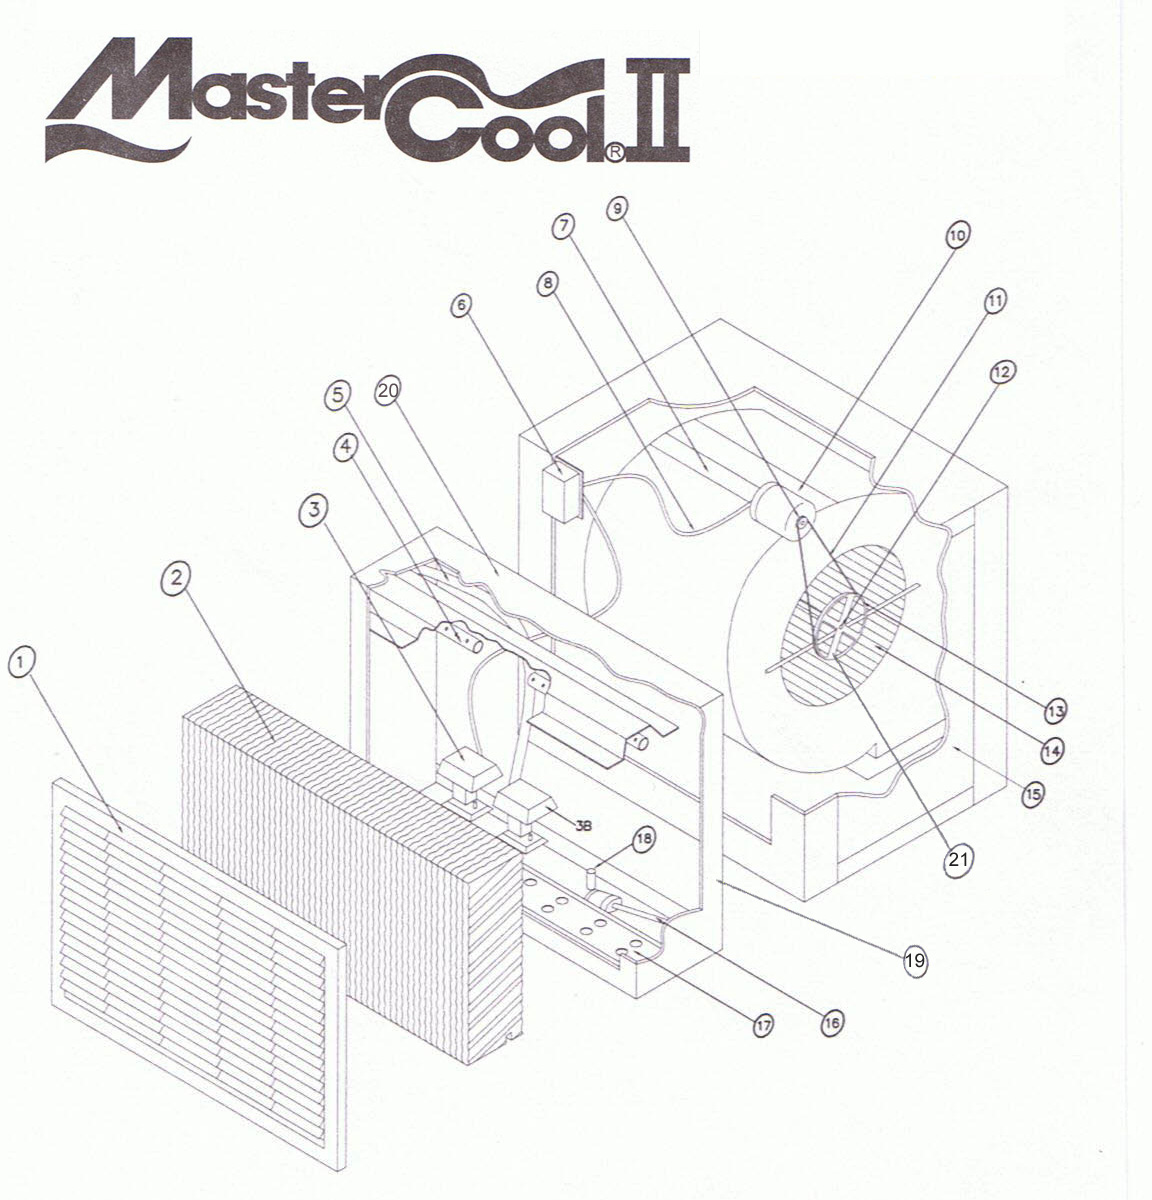 mastercool-2-parts-new.jpg